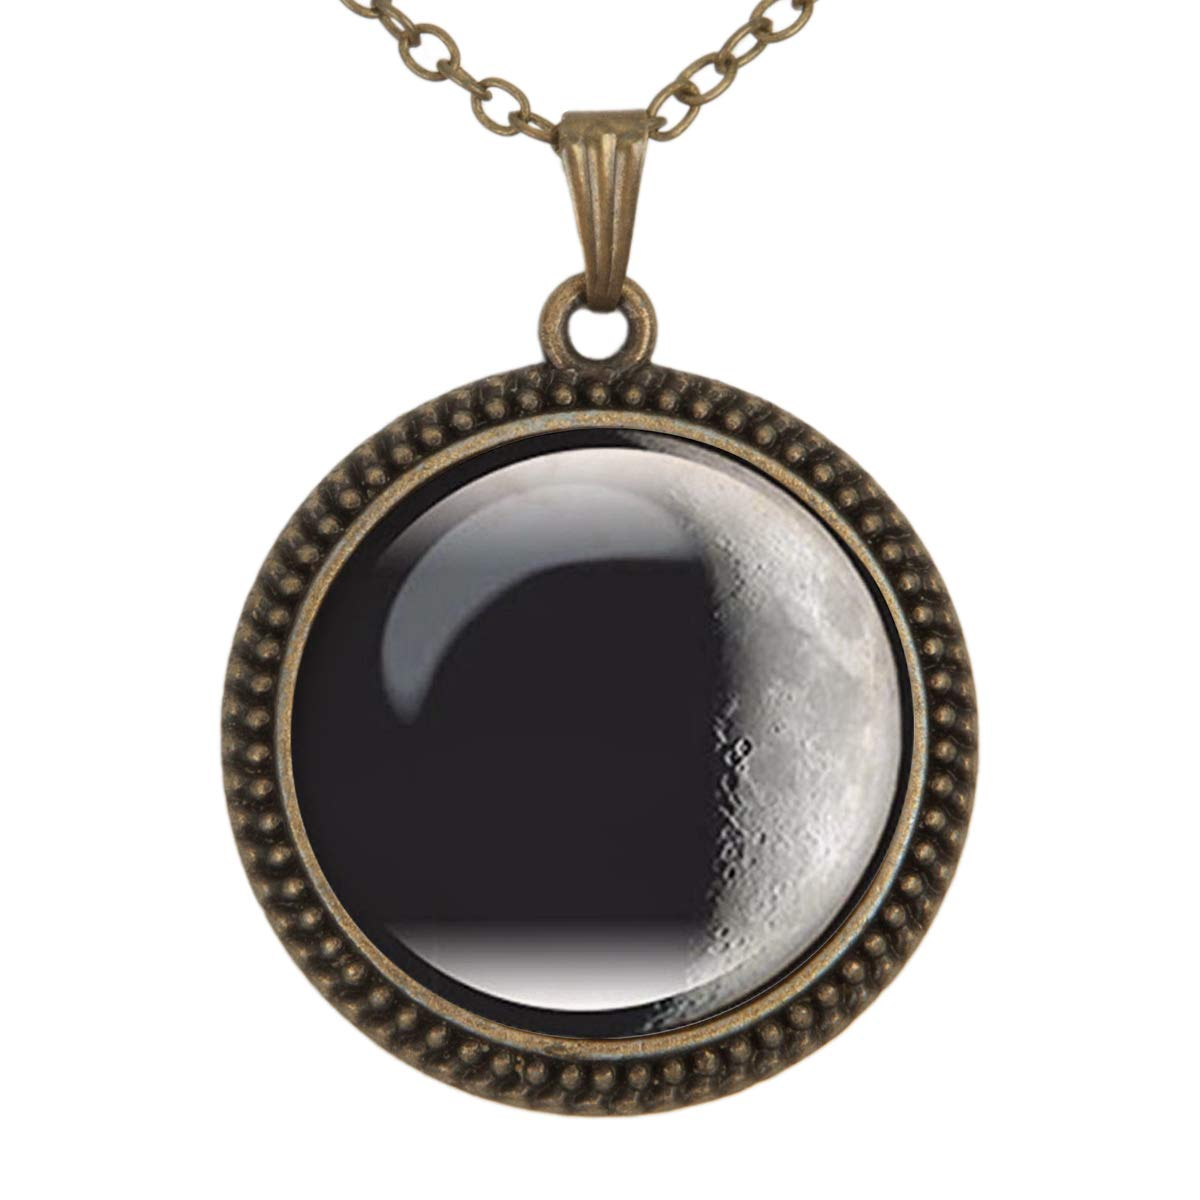 Family Decor Black Moon Art Pendant Necklace Cabochon Glass Vintage Bronze Chain Necklace Jewelry Handmade